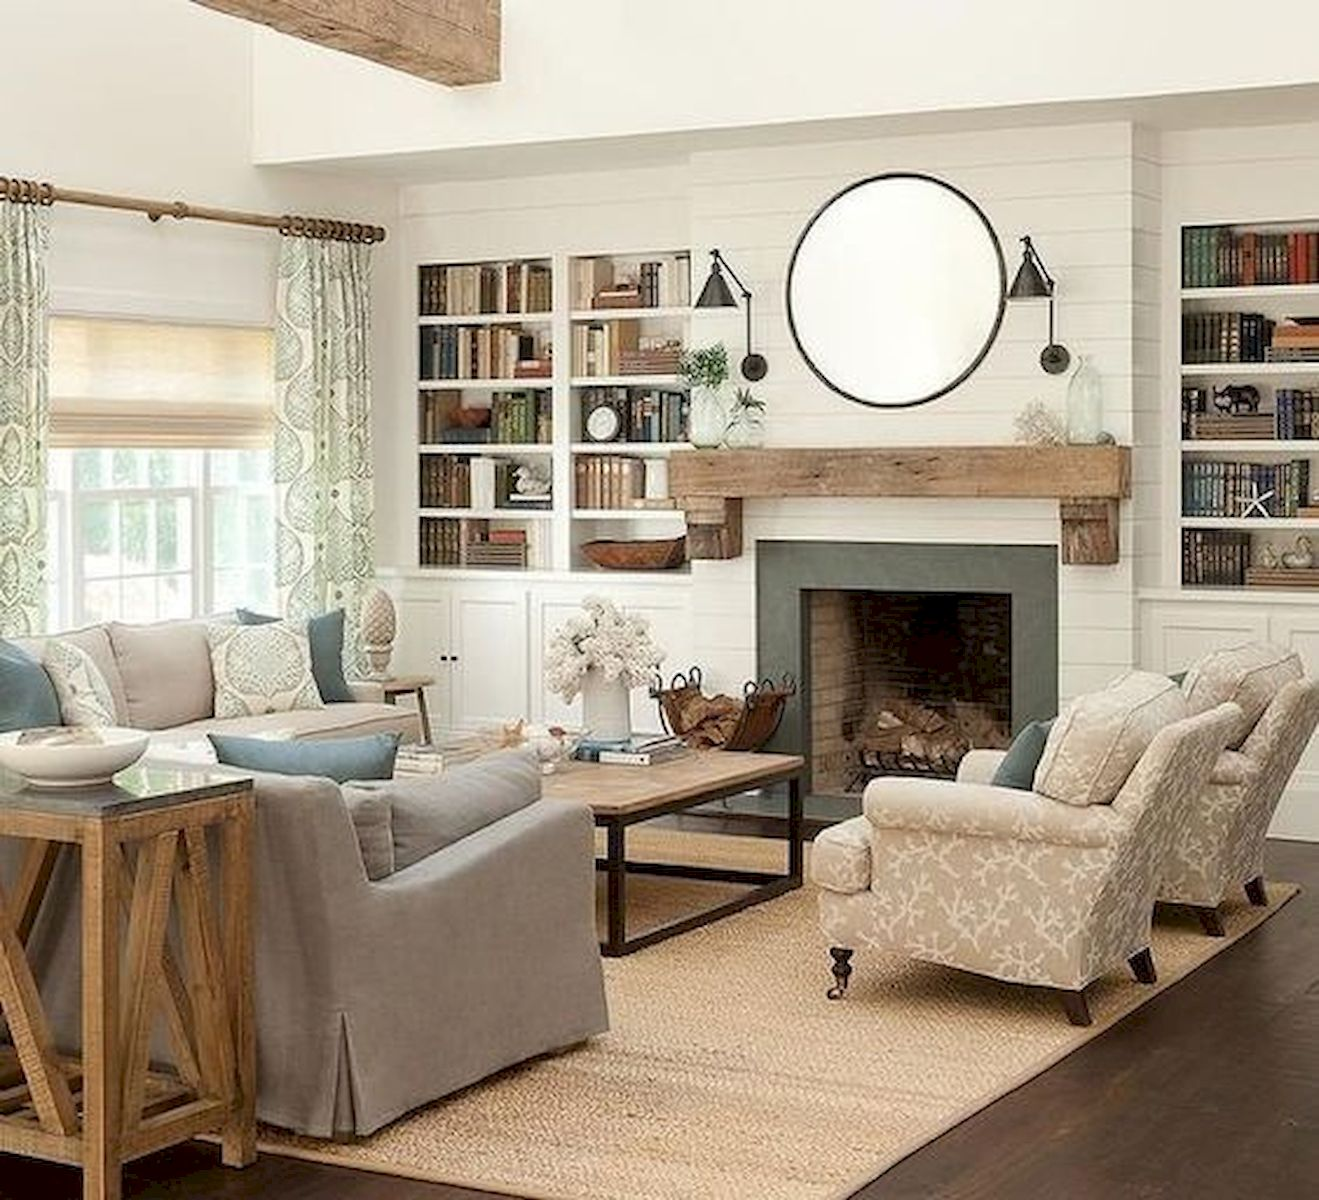 50 Best Modern Farmhouse Decor Ideas For Living Room Googodecor